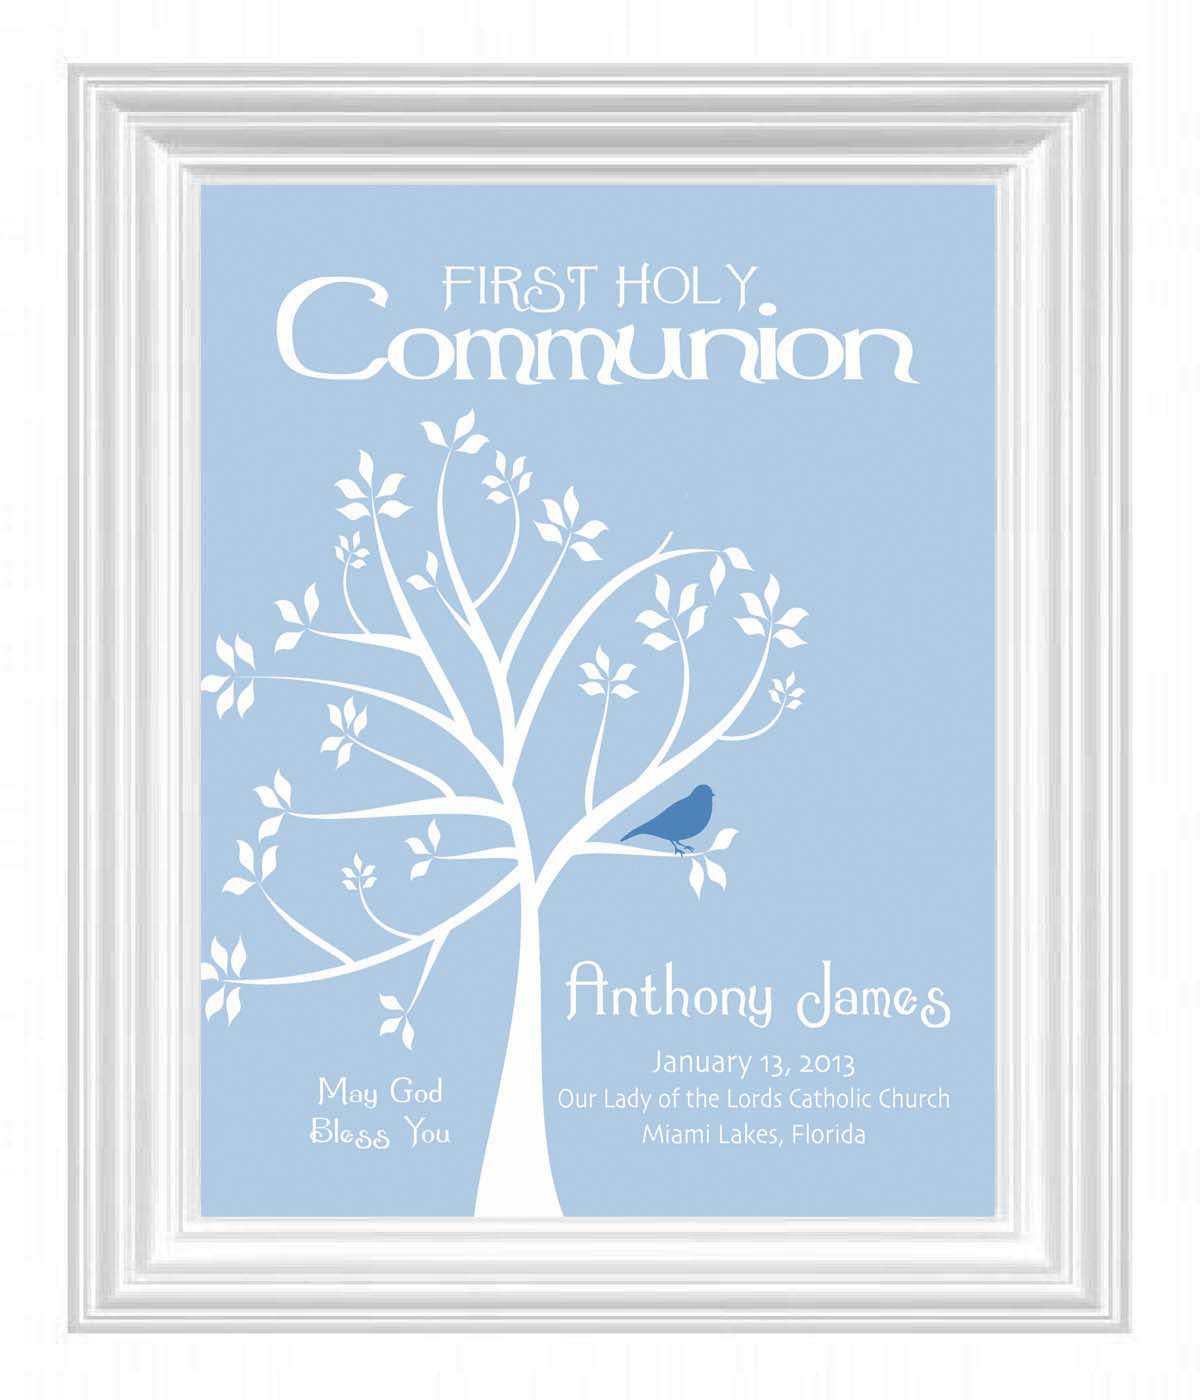 First Communion Gift Ideas Boys  munion Personalized Gift First Holy munion Print Boys